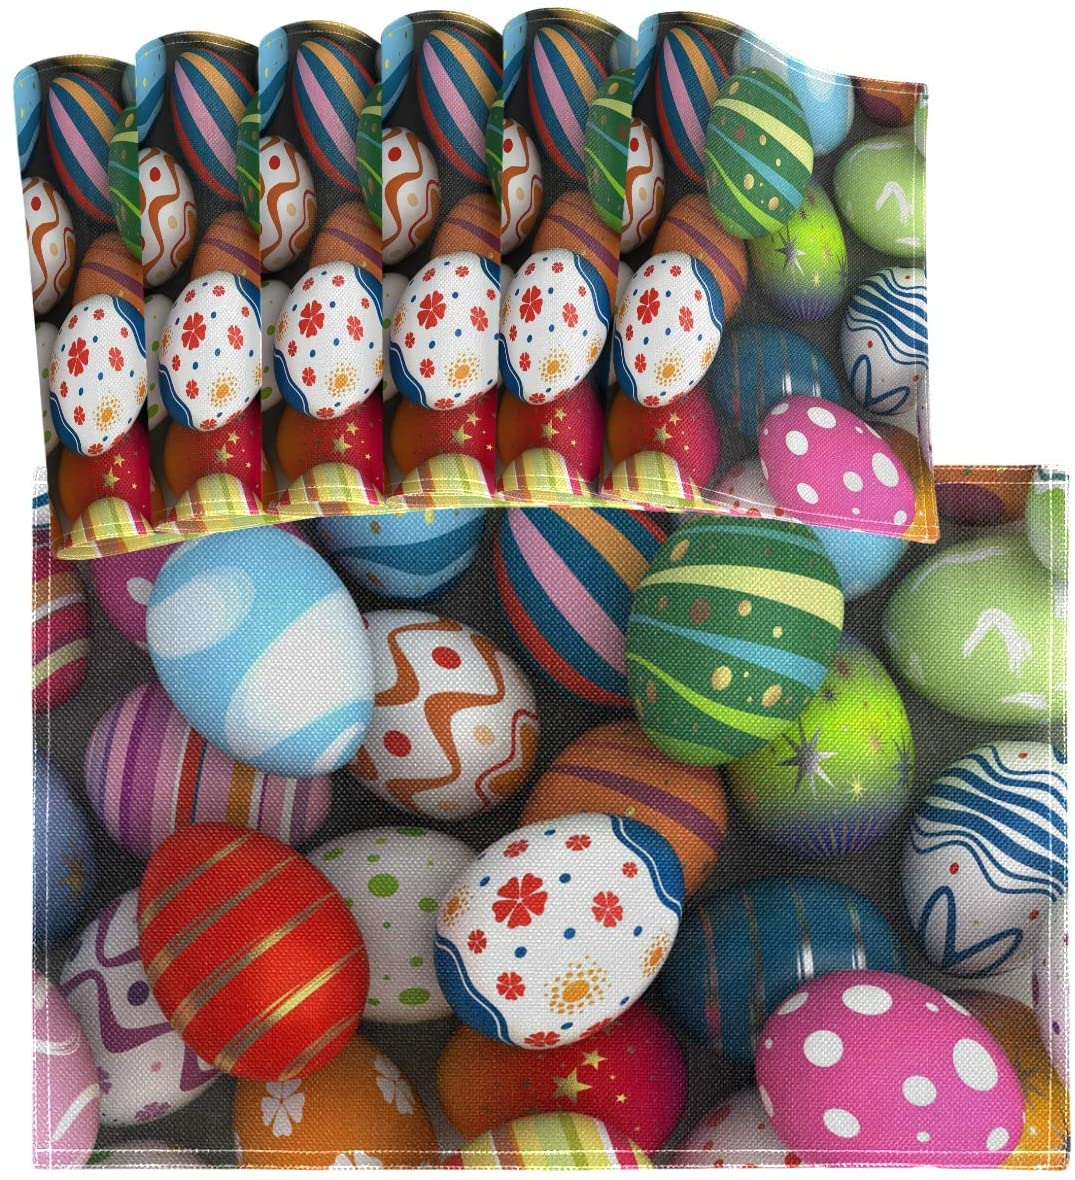 Oarencol Easter Colorful Eggs Placemat Table Mats Set of 6, Heat-Resistant Washable Clean Kitchen Place Mats for Dining Table Decoration